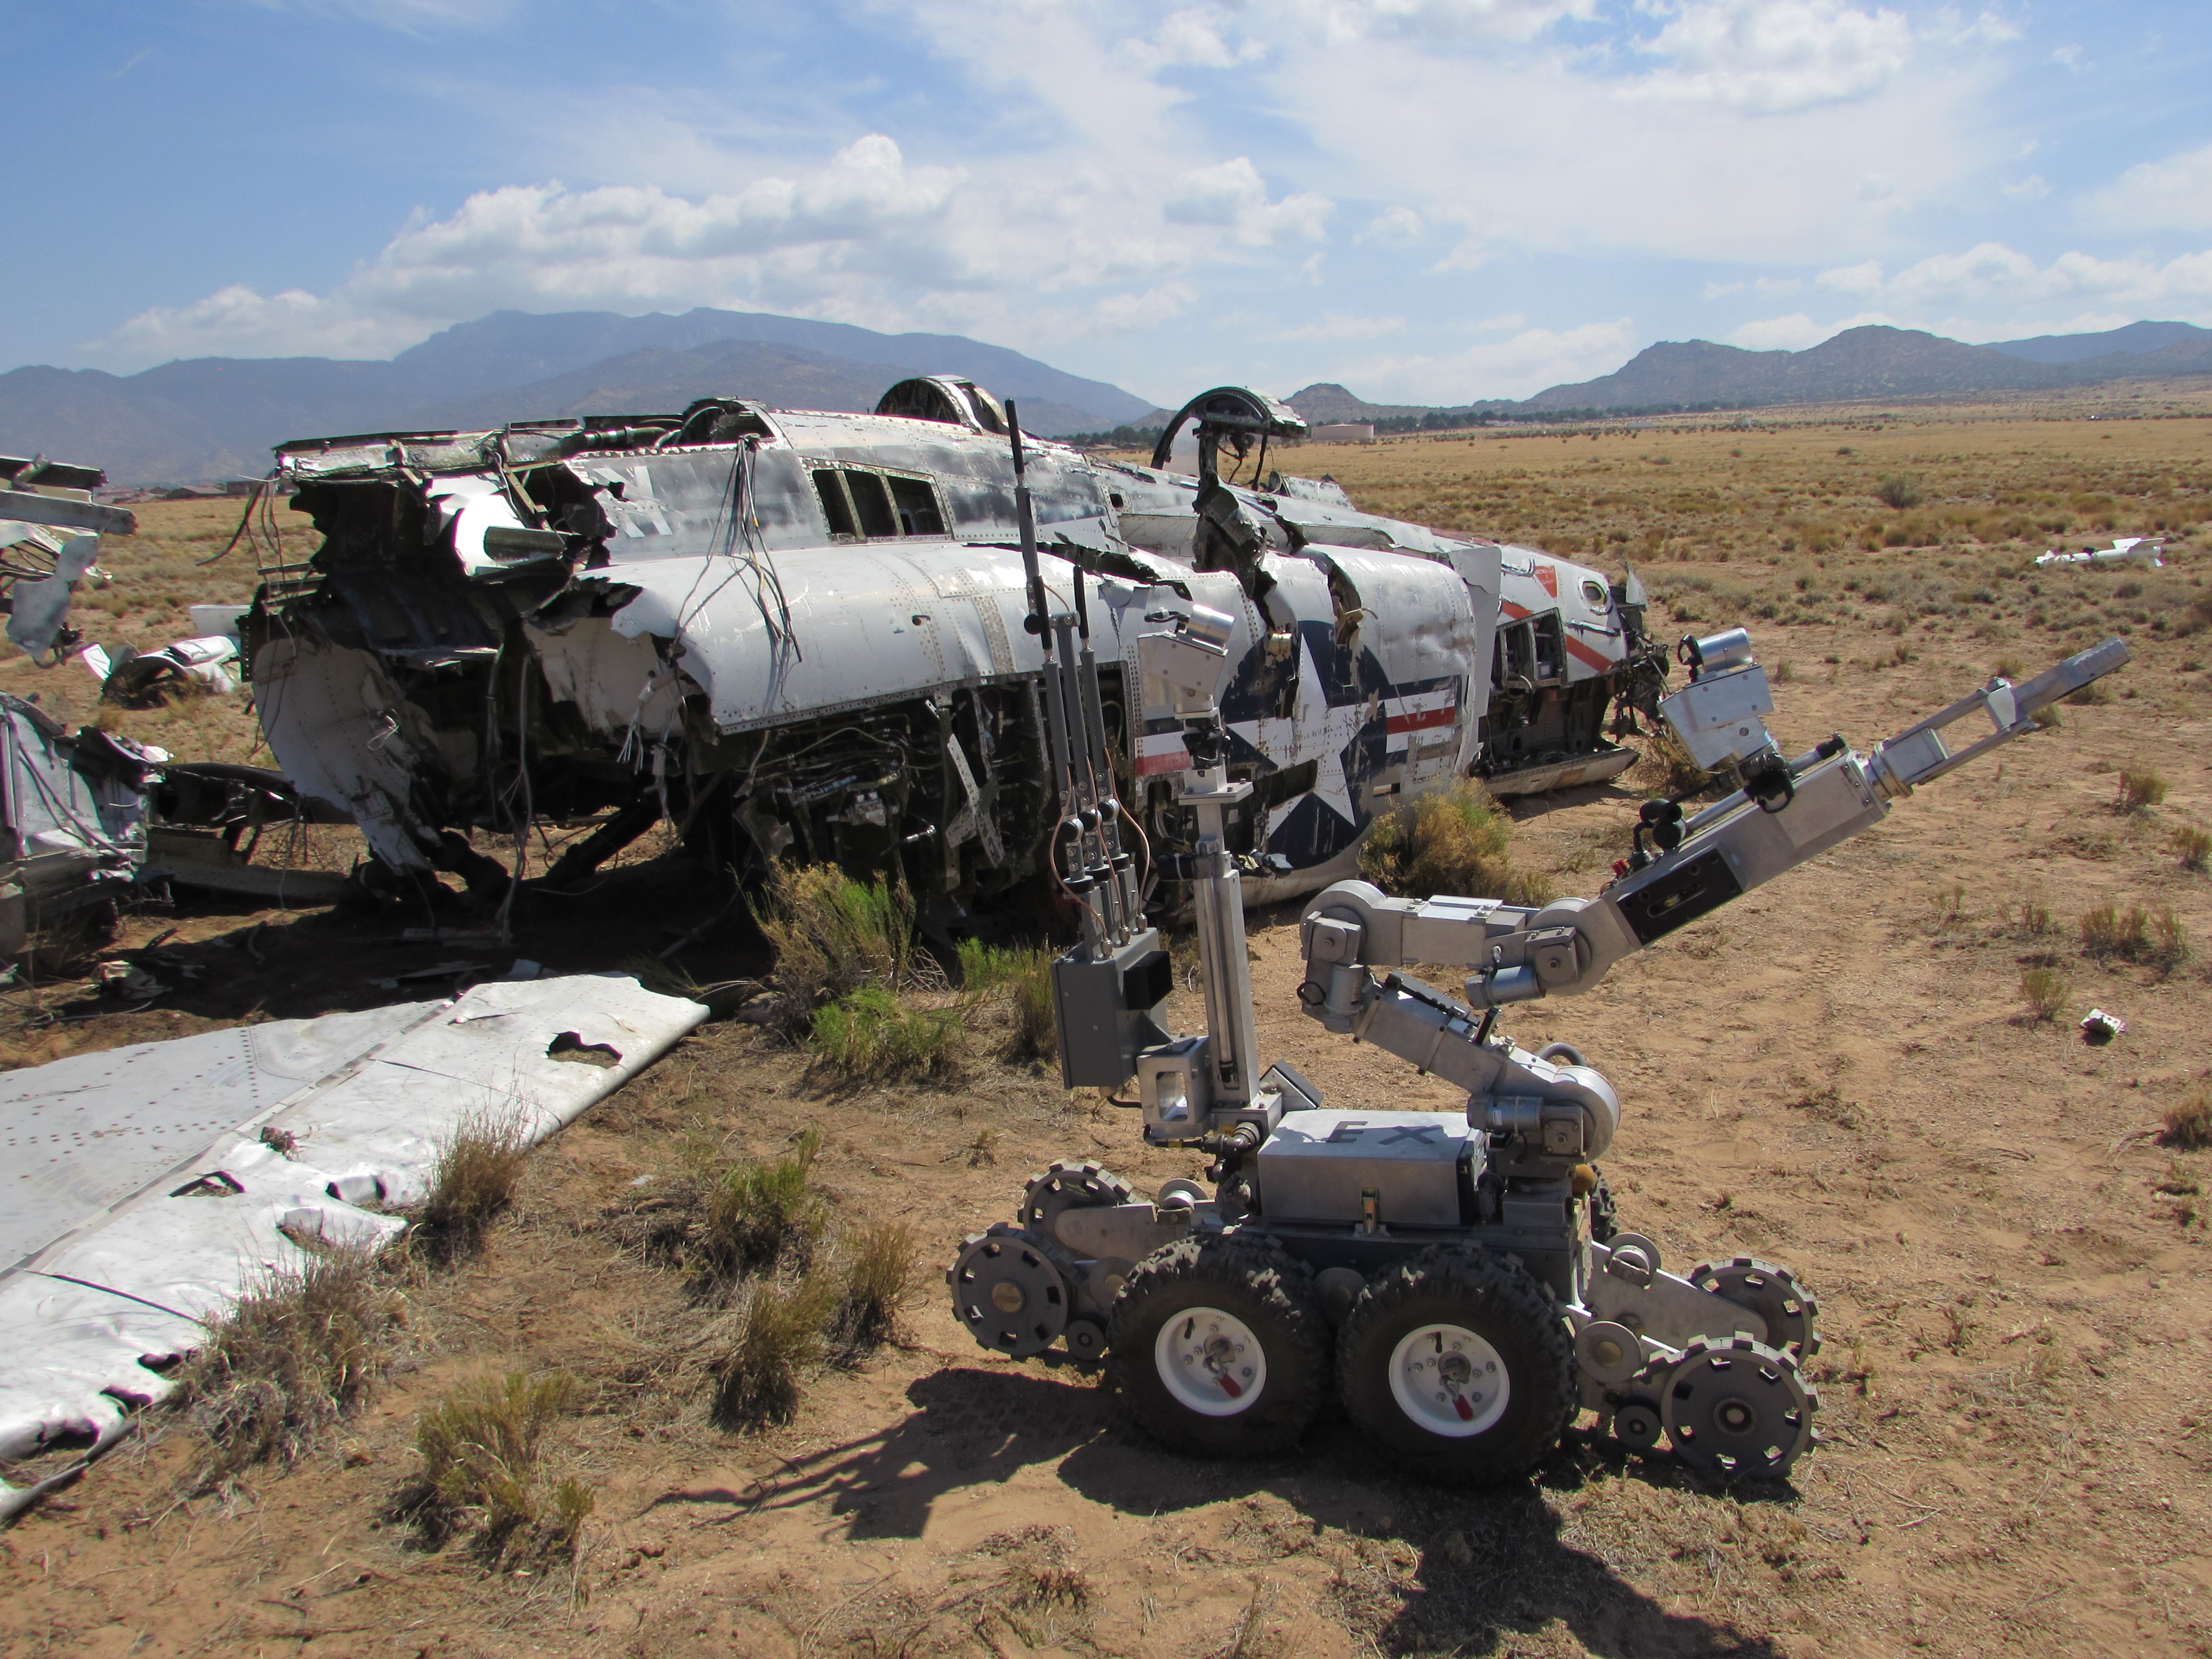 After exploring the simulated crash site, this robot looks for possible objectives hidden elsewhere in the vicinity. (Kelsey D. Atherton)